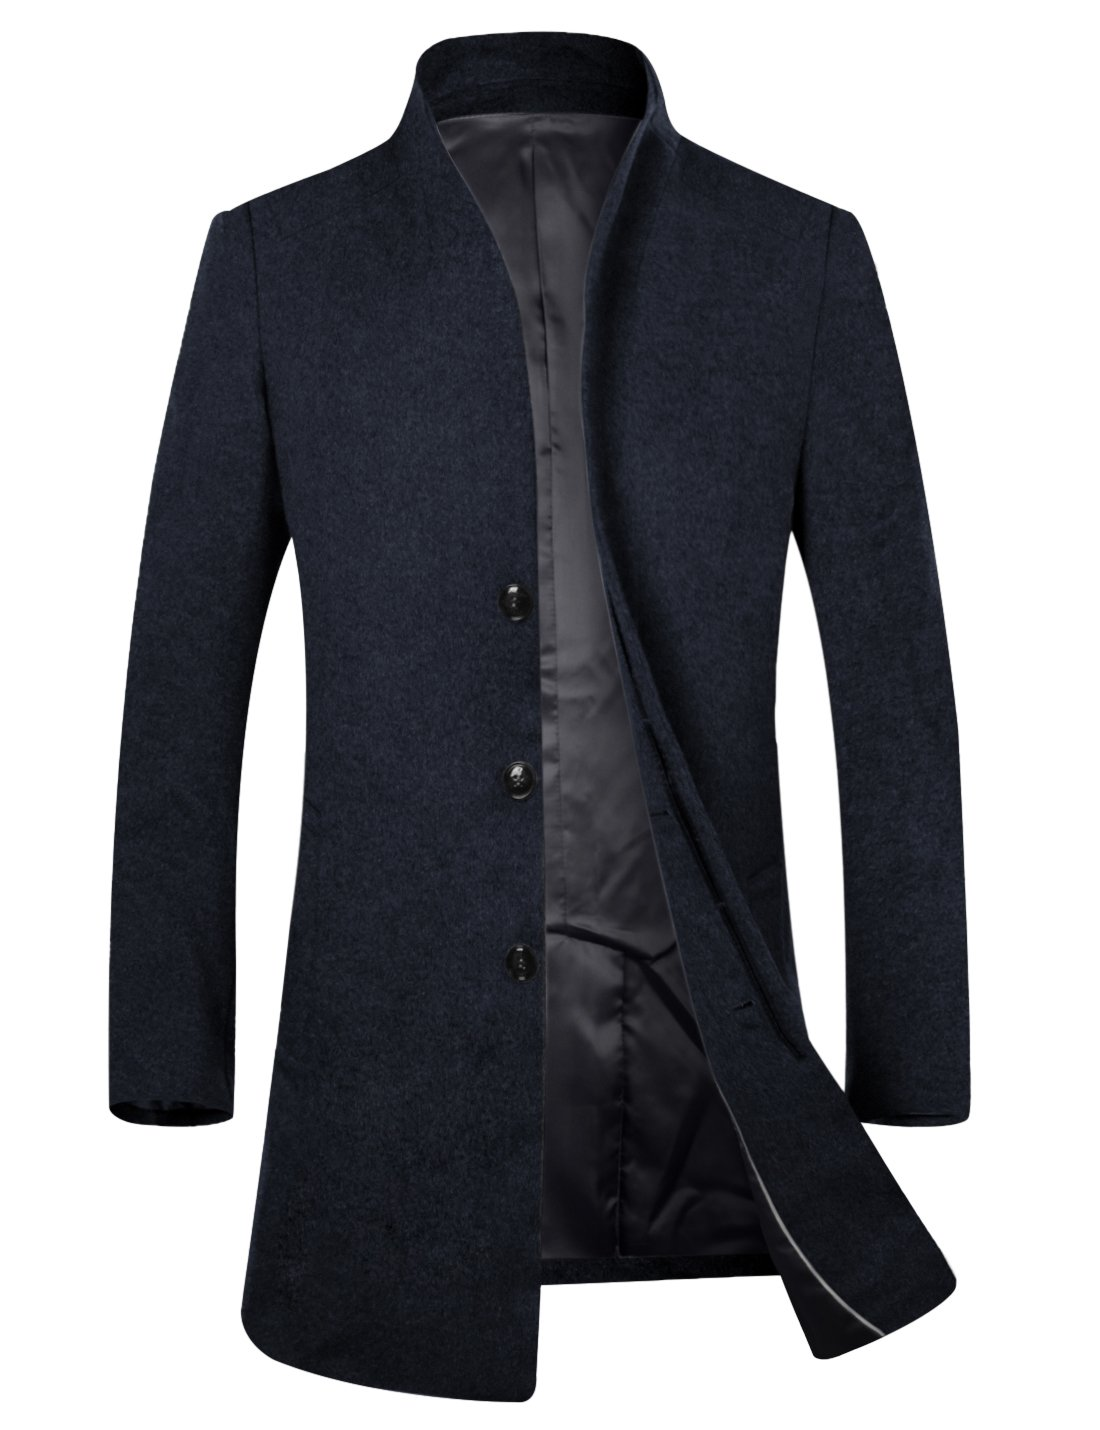 APTRO Men's Wool French Front Slim Fit Long Business Coat 1681 DZDY Navy M